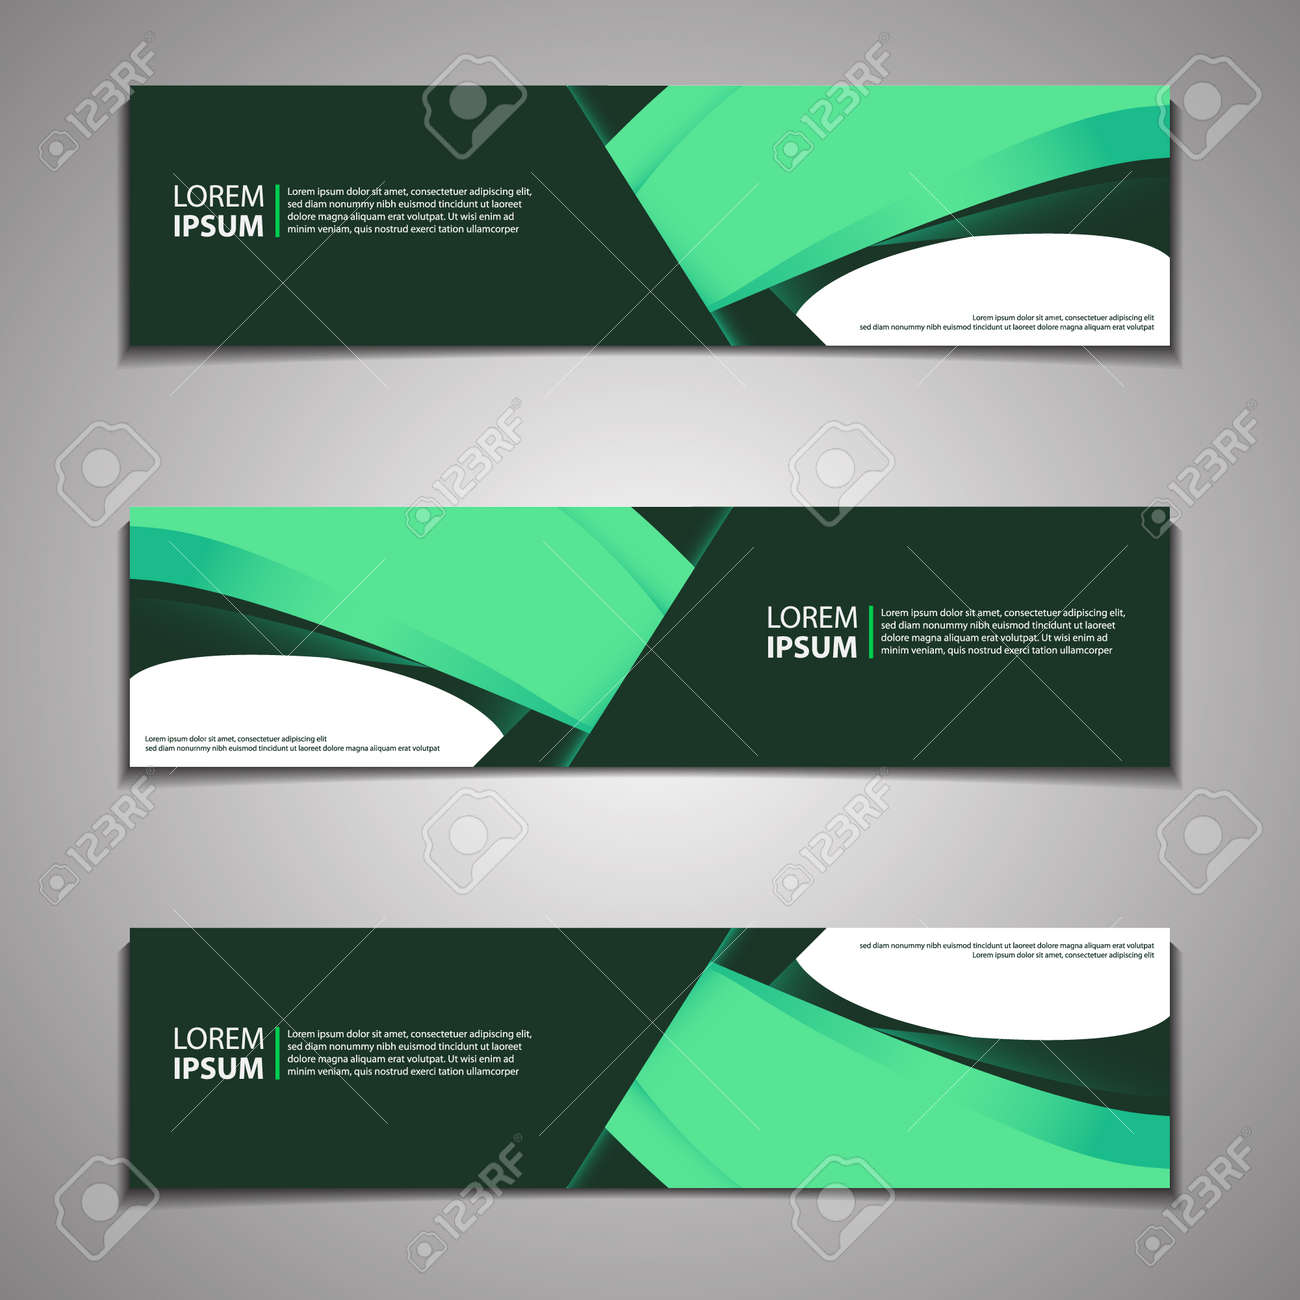 Label Banner Background Modern Business Corporate Template Design Web - 159863677